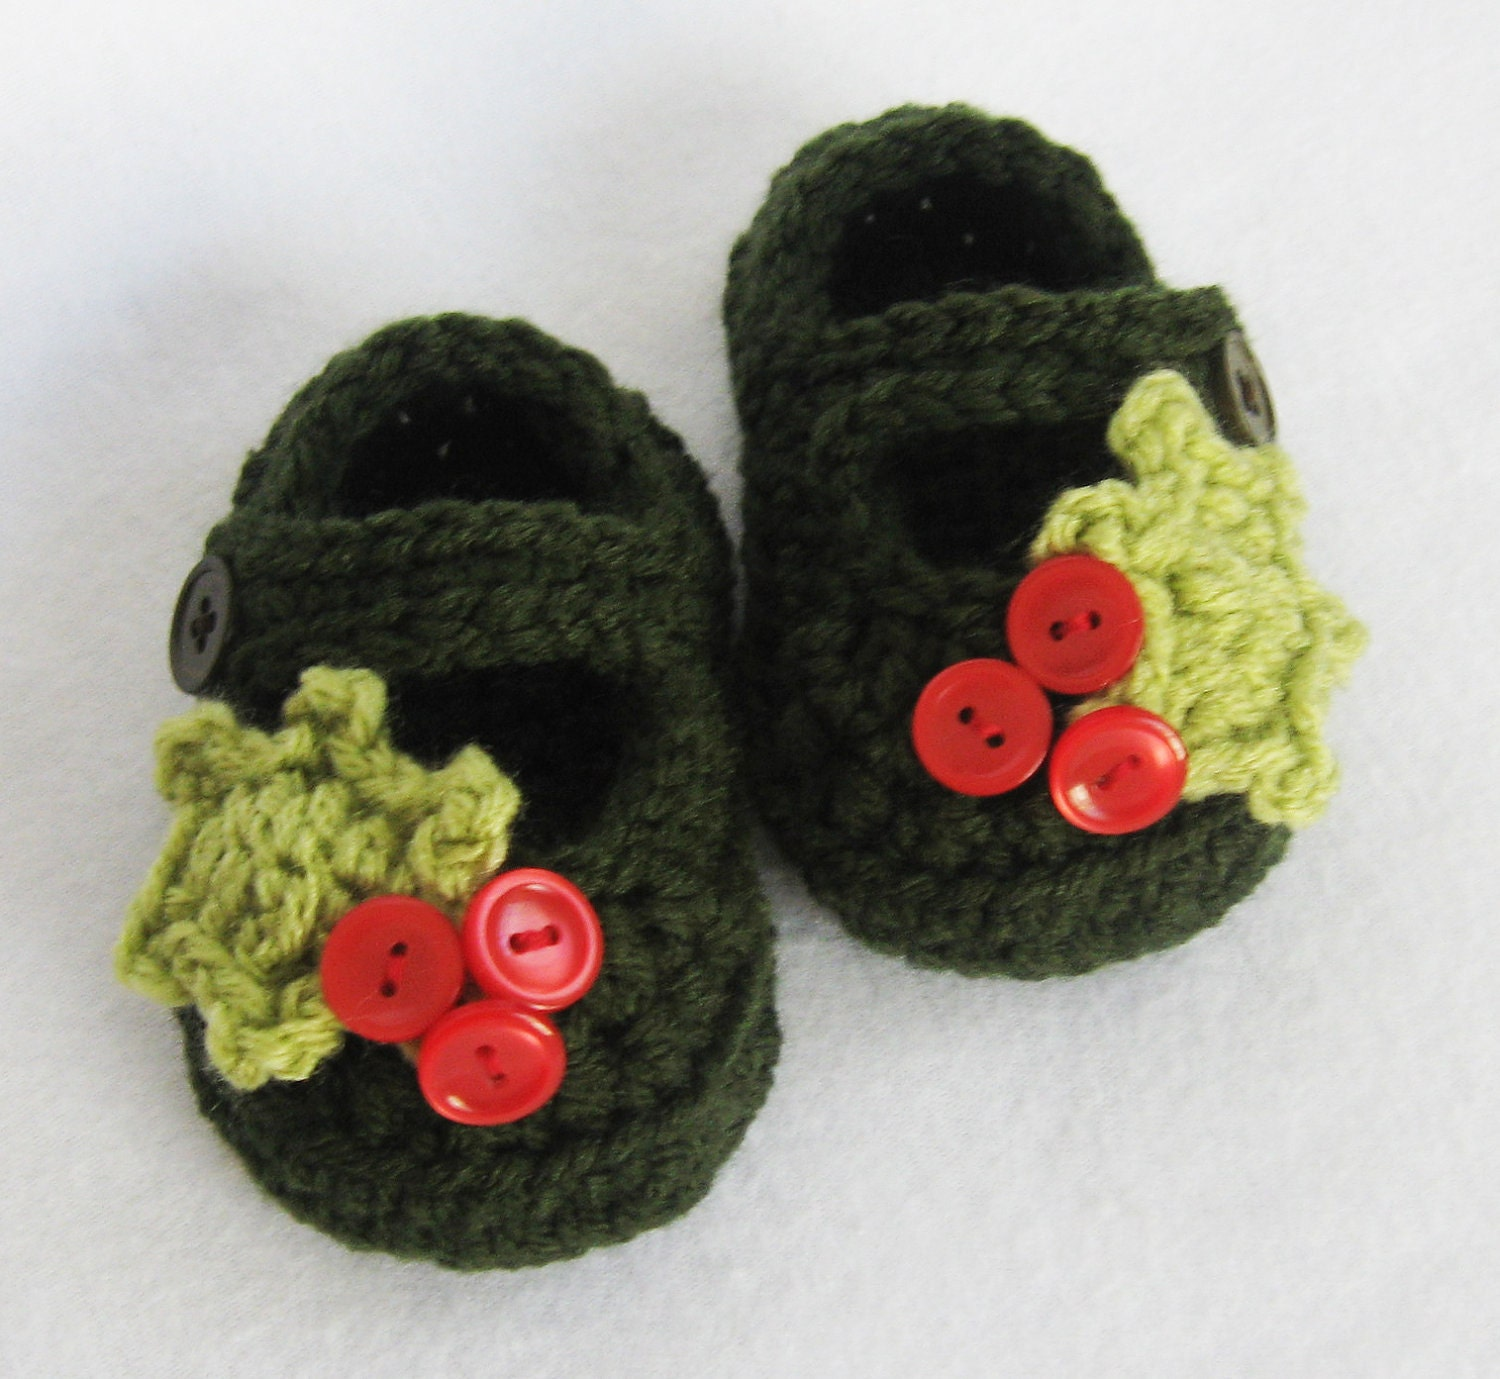 CROCHET PATTERN Holly Baby Shoes 5 sizes included from